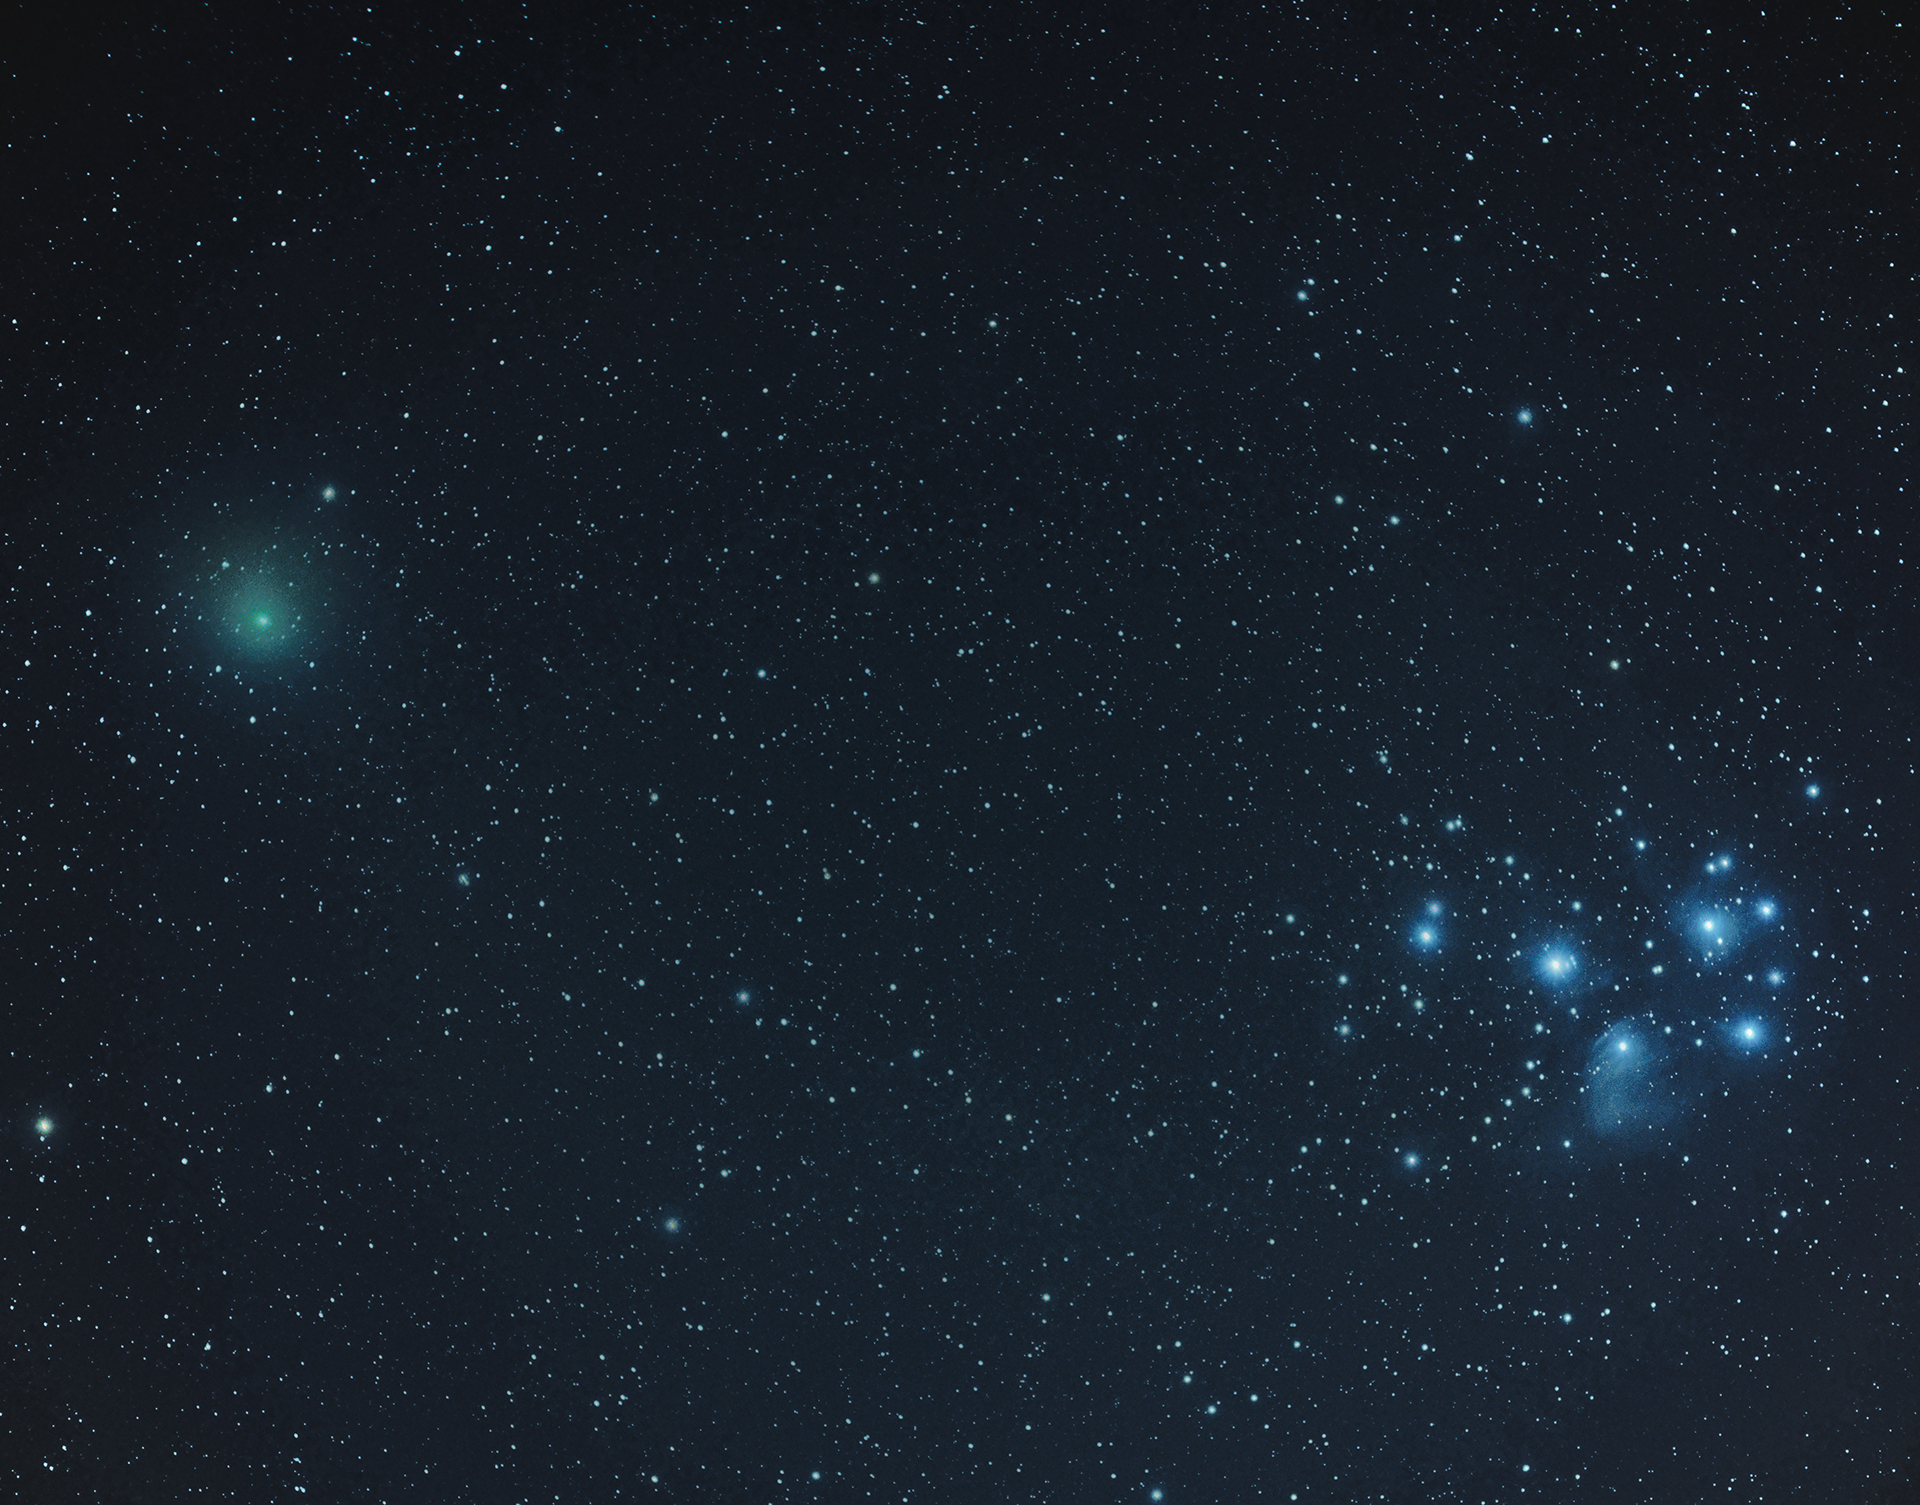 Comet 46p and the Pleiades...